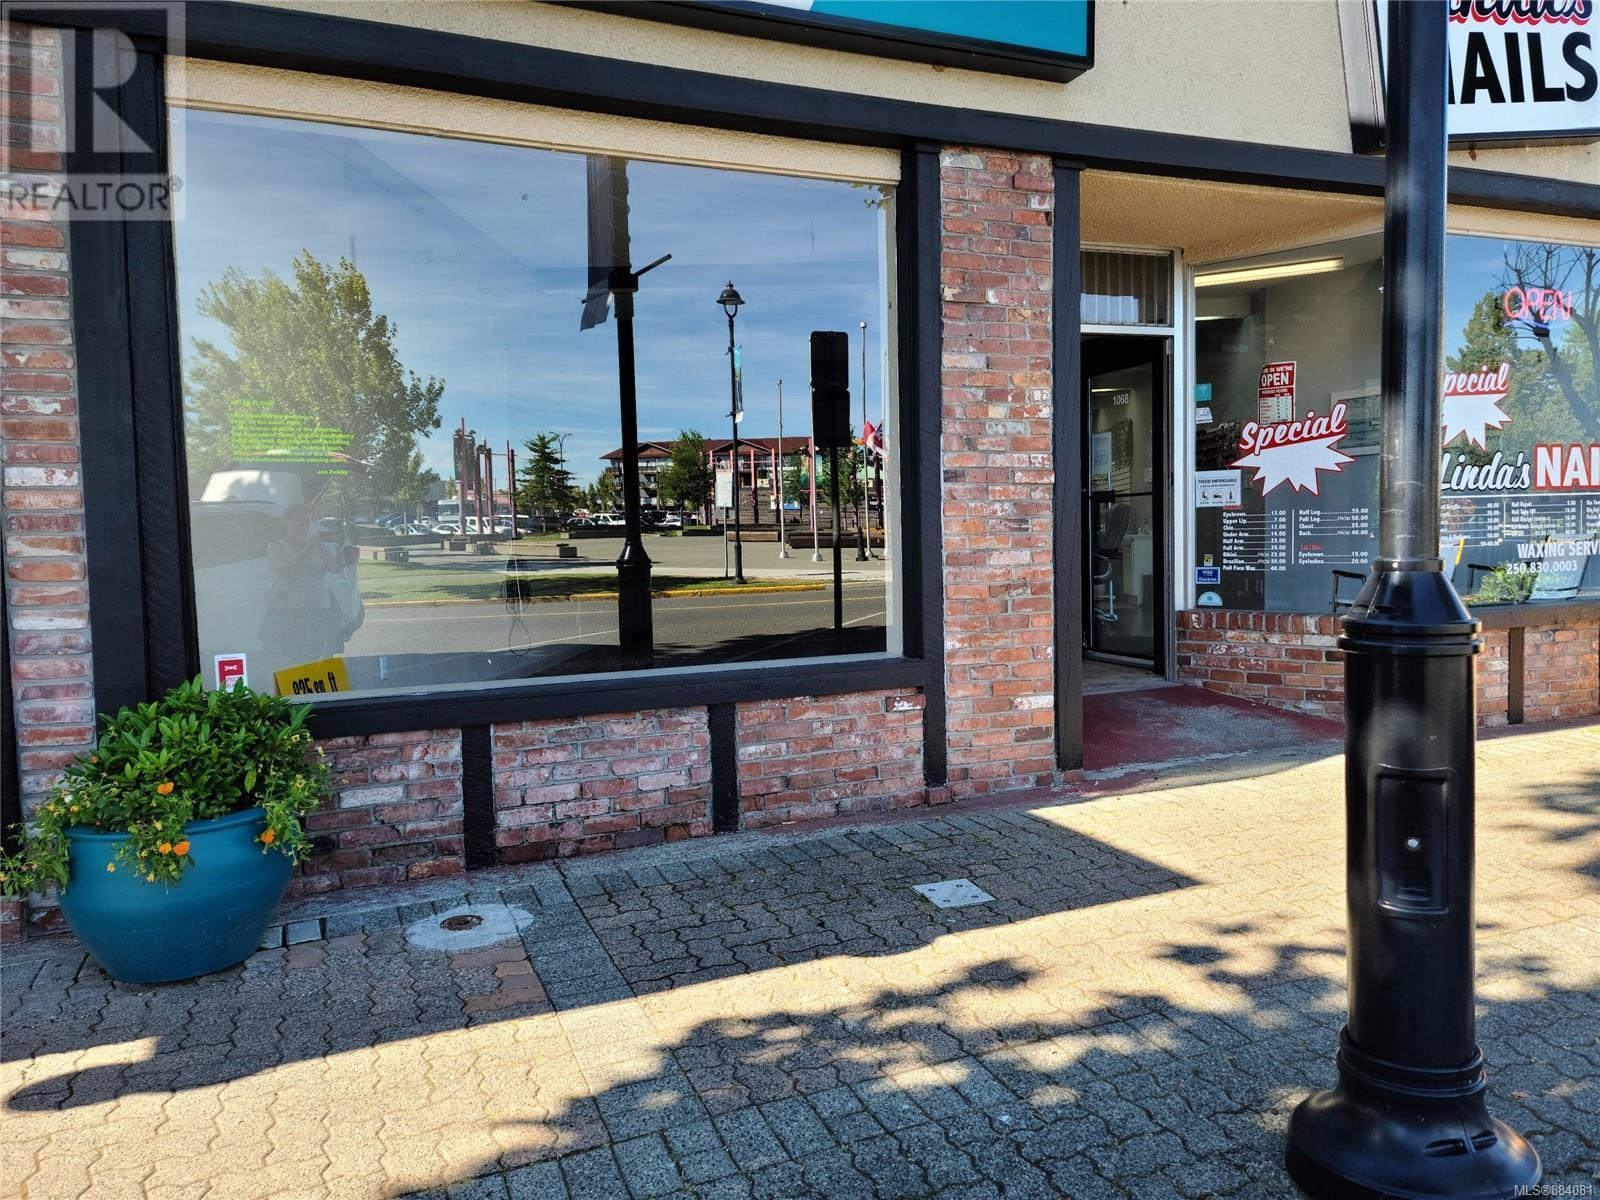 MLS® #884081 - Campbell River Retail For lease Image #1